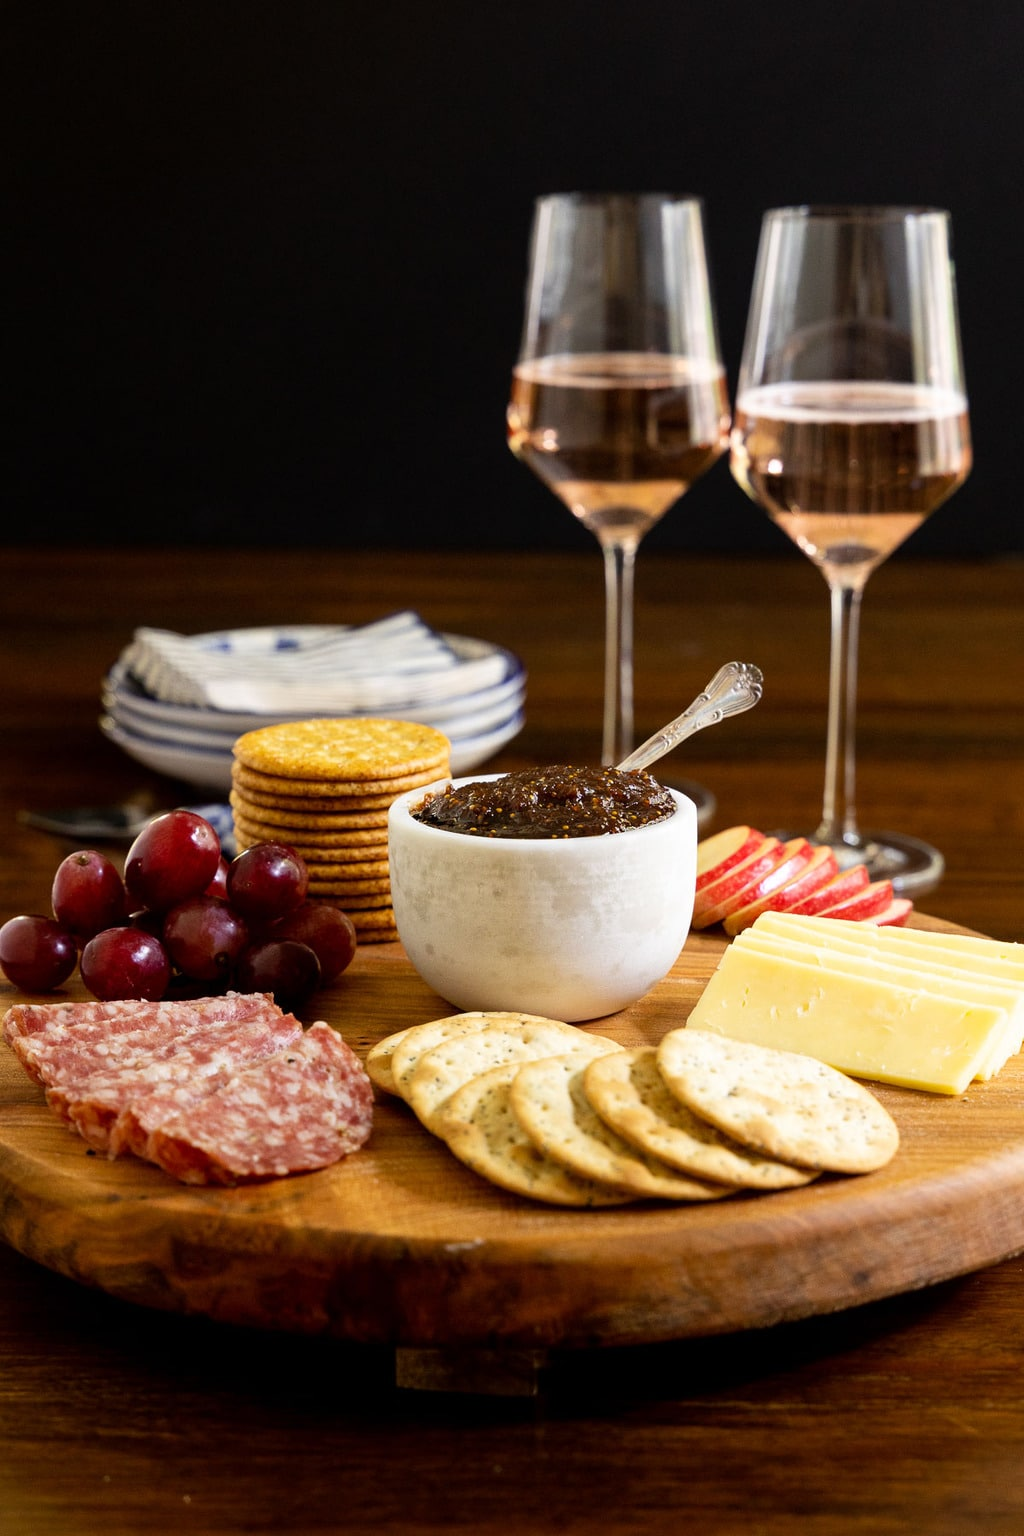 Vertical photo of an appetizer featuring Sweet and Spicy Fig Spread with sausage, grapes, crackers, cheese and apples.